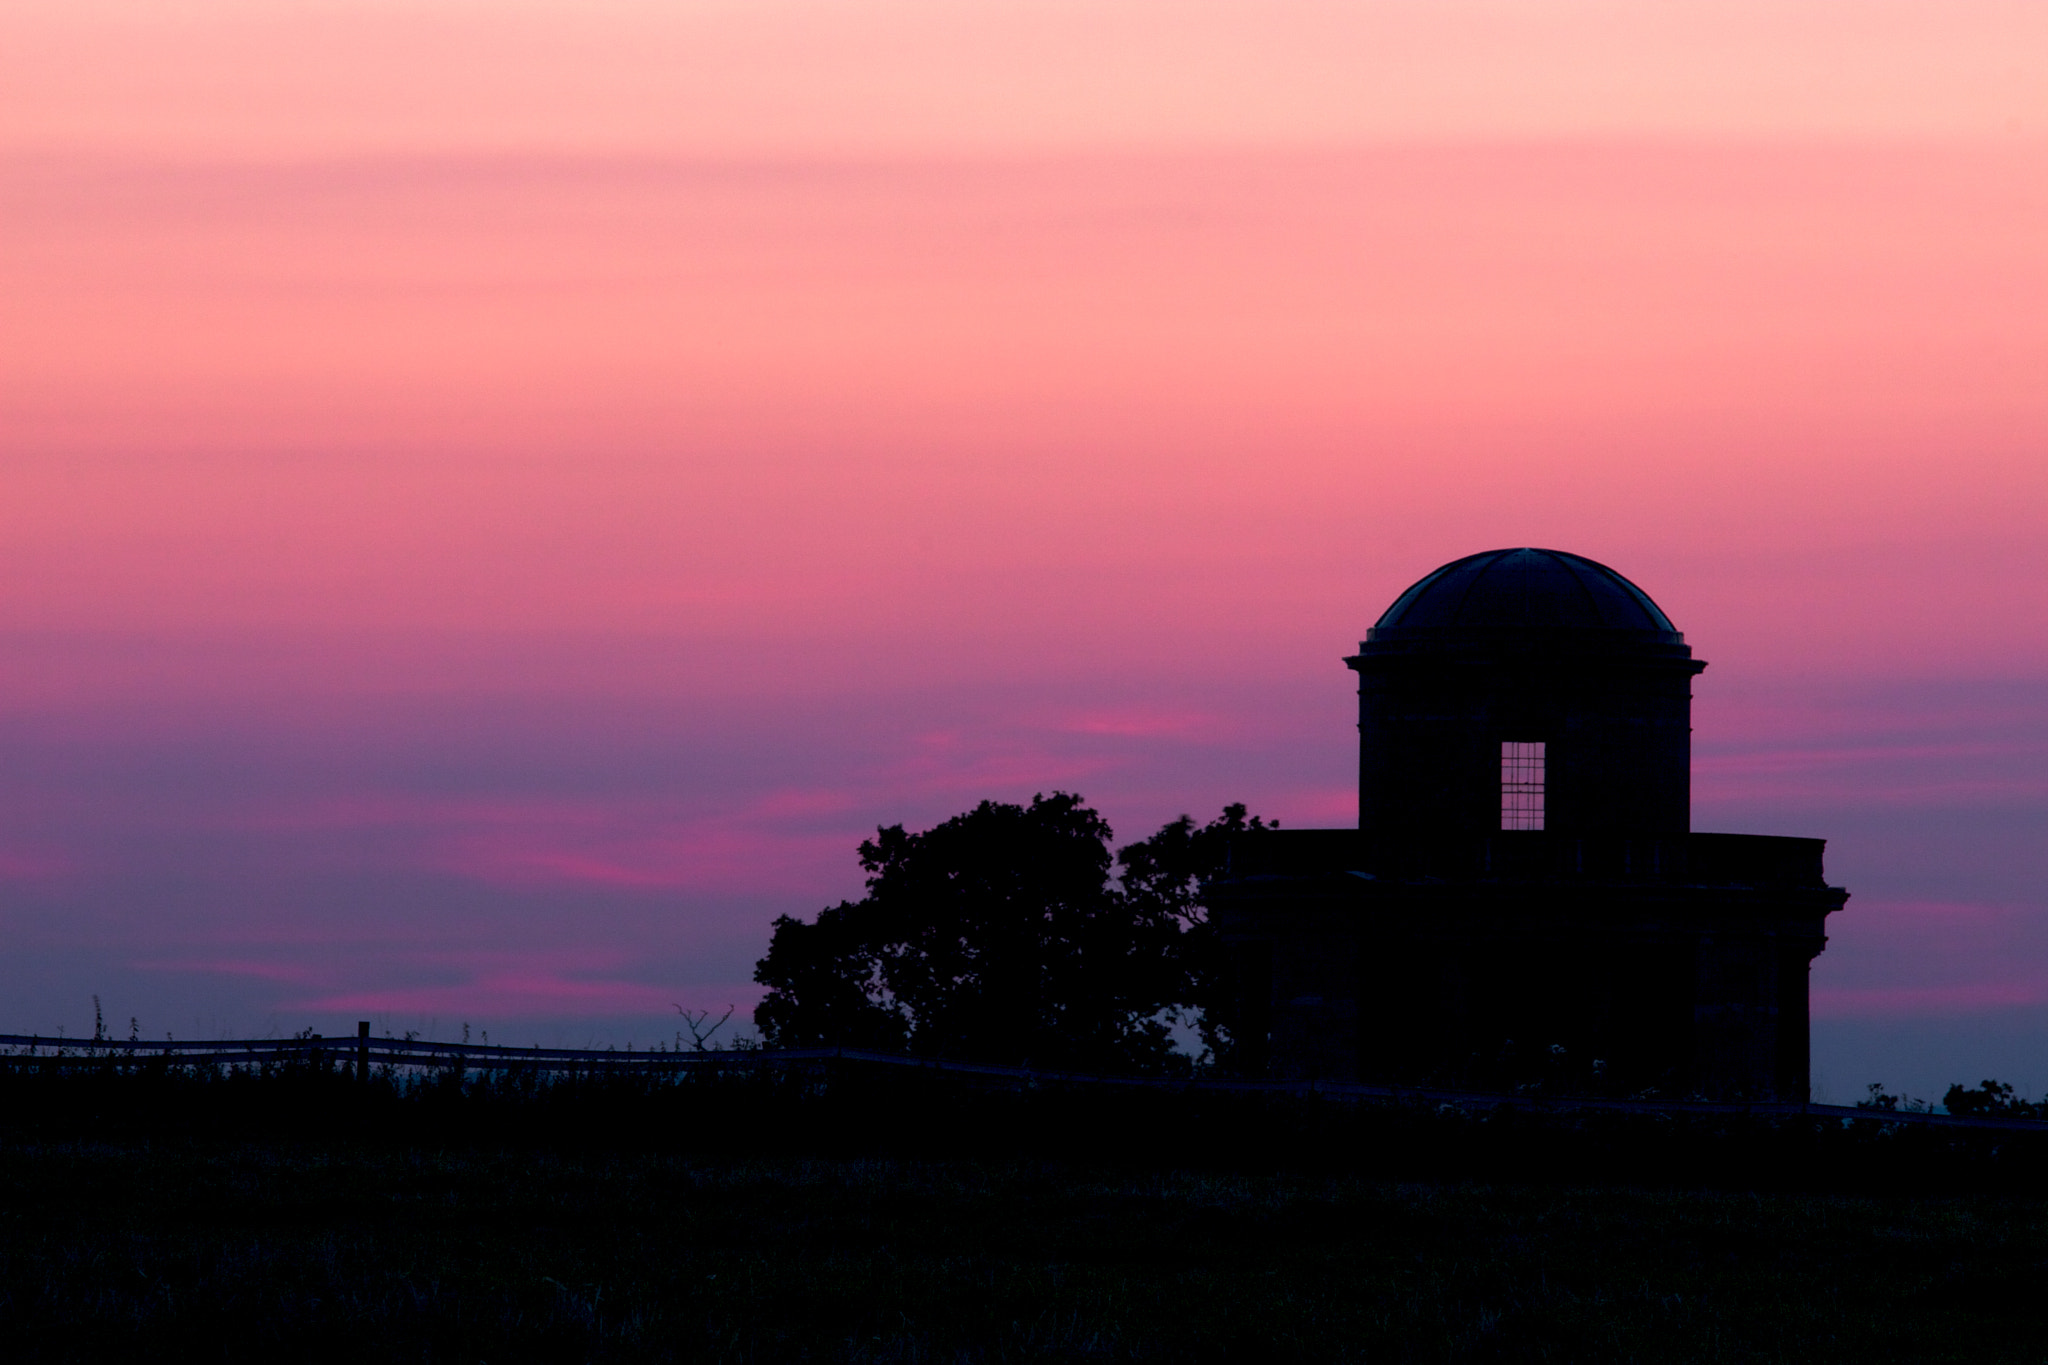 Photograph Panorama Tower at Sunset #2 by Andrew Russell on 500px